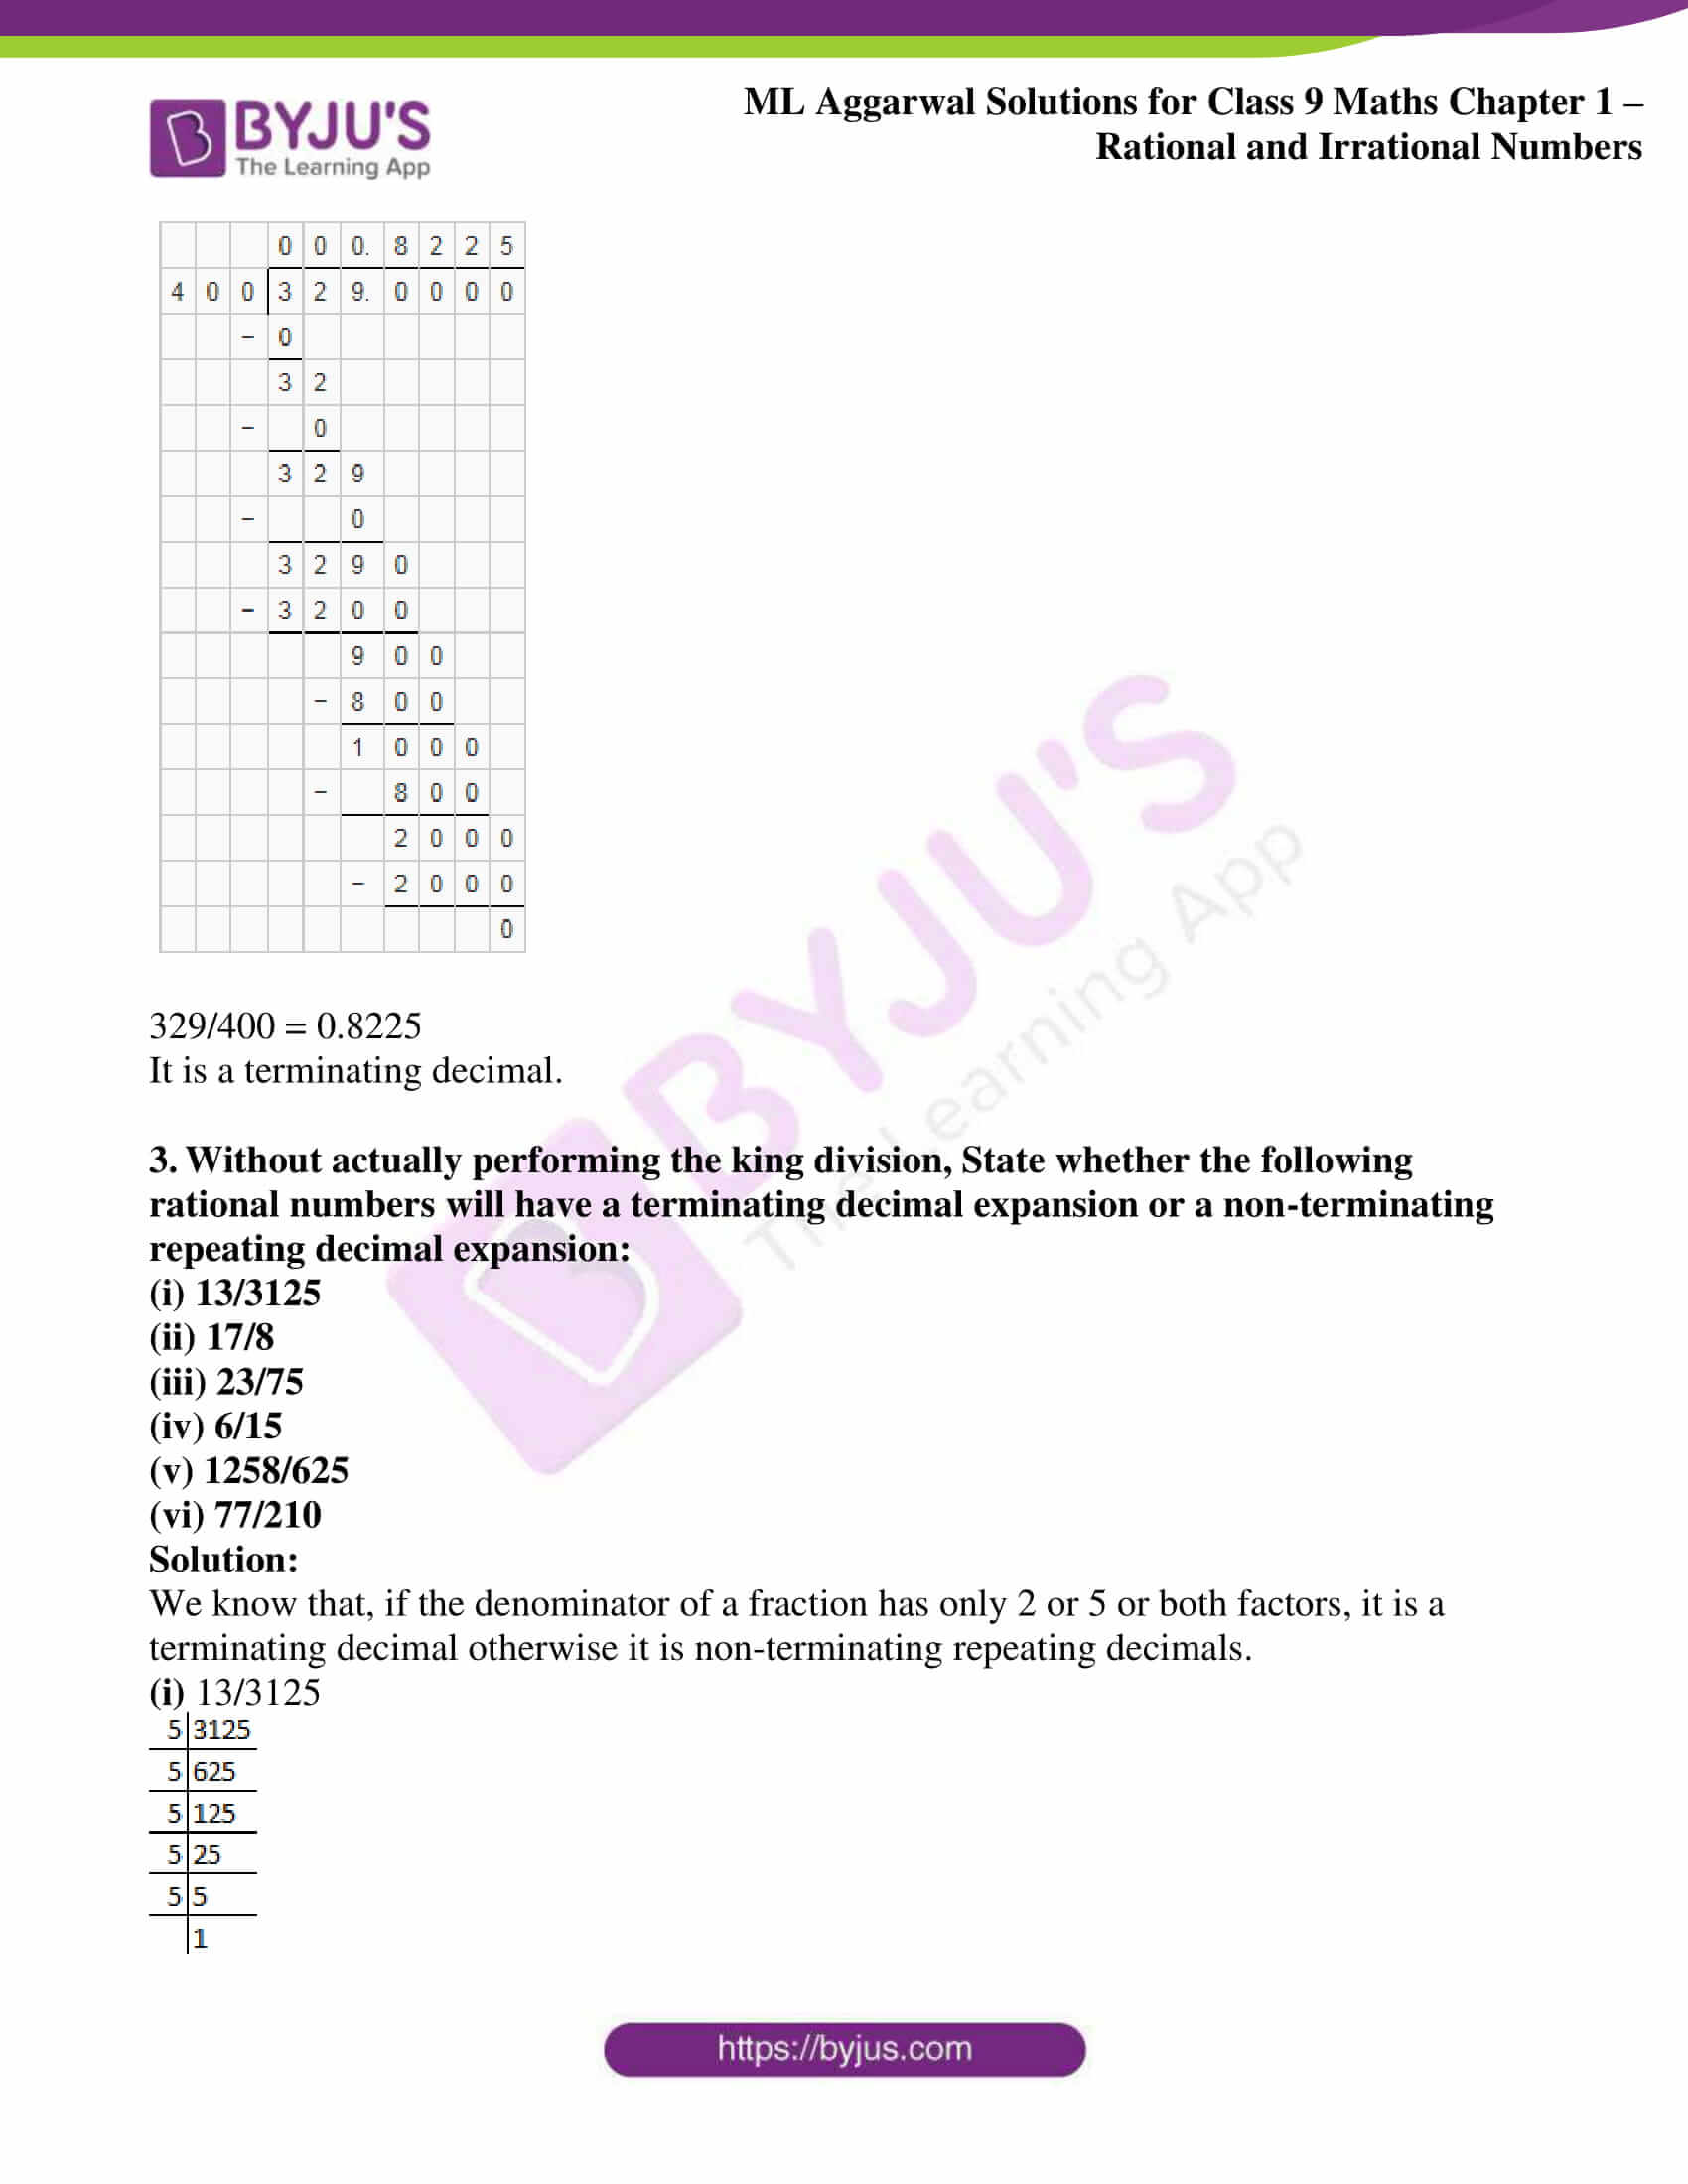 ml aggarwal solutions for class 9 maths chapter 1 20